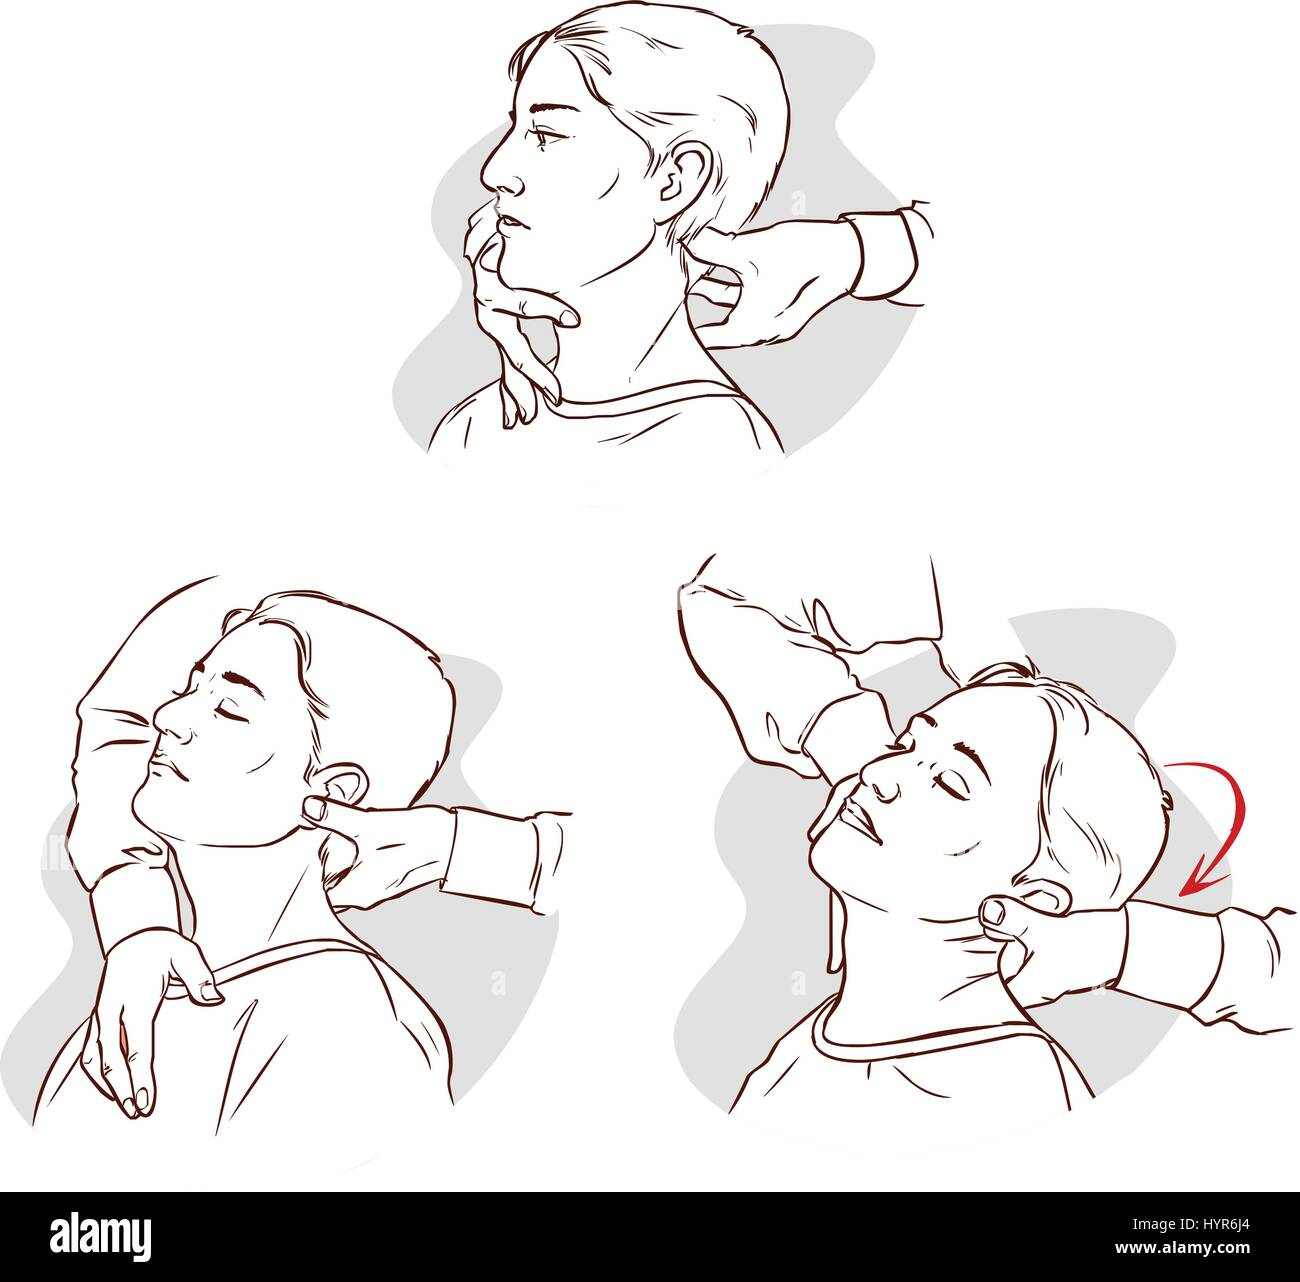 Vector illustration of a Gonstead Chiropractic for acute neck pain - Stock Image